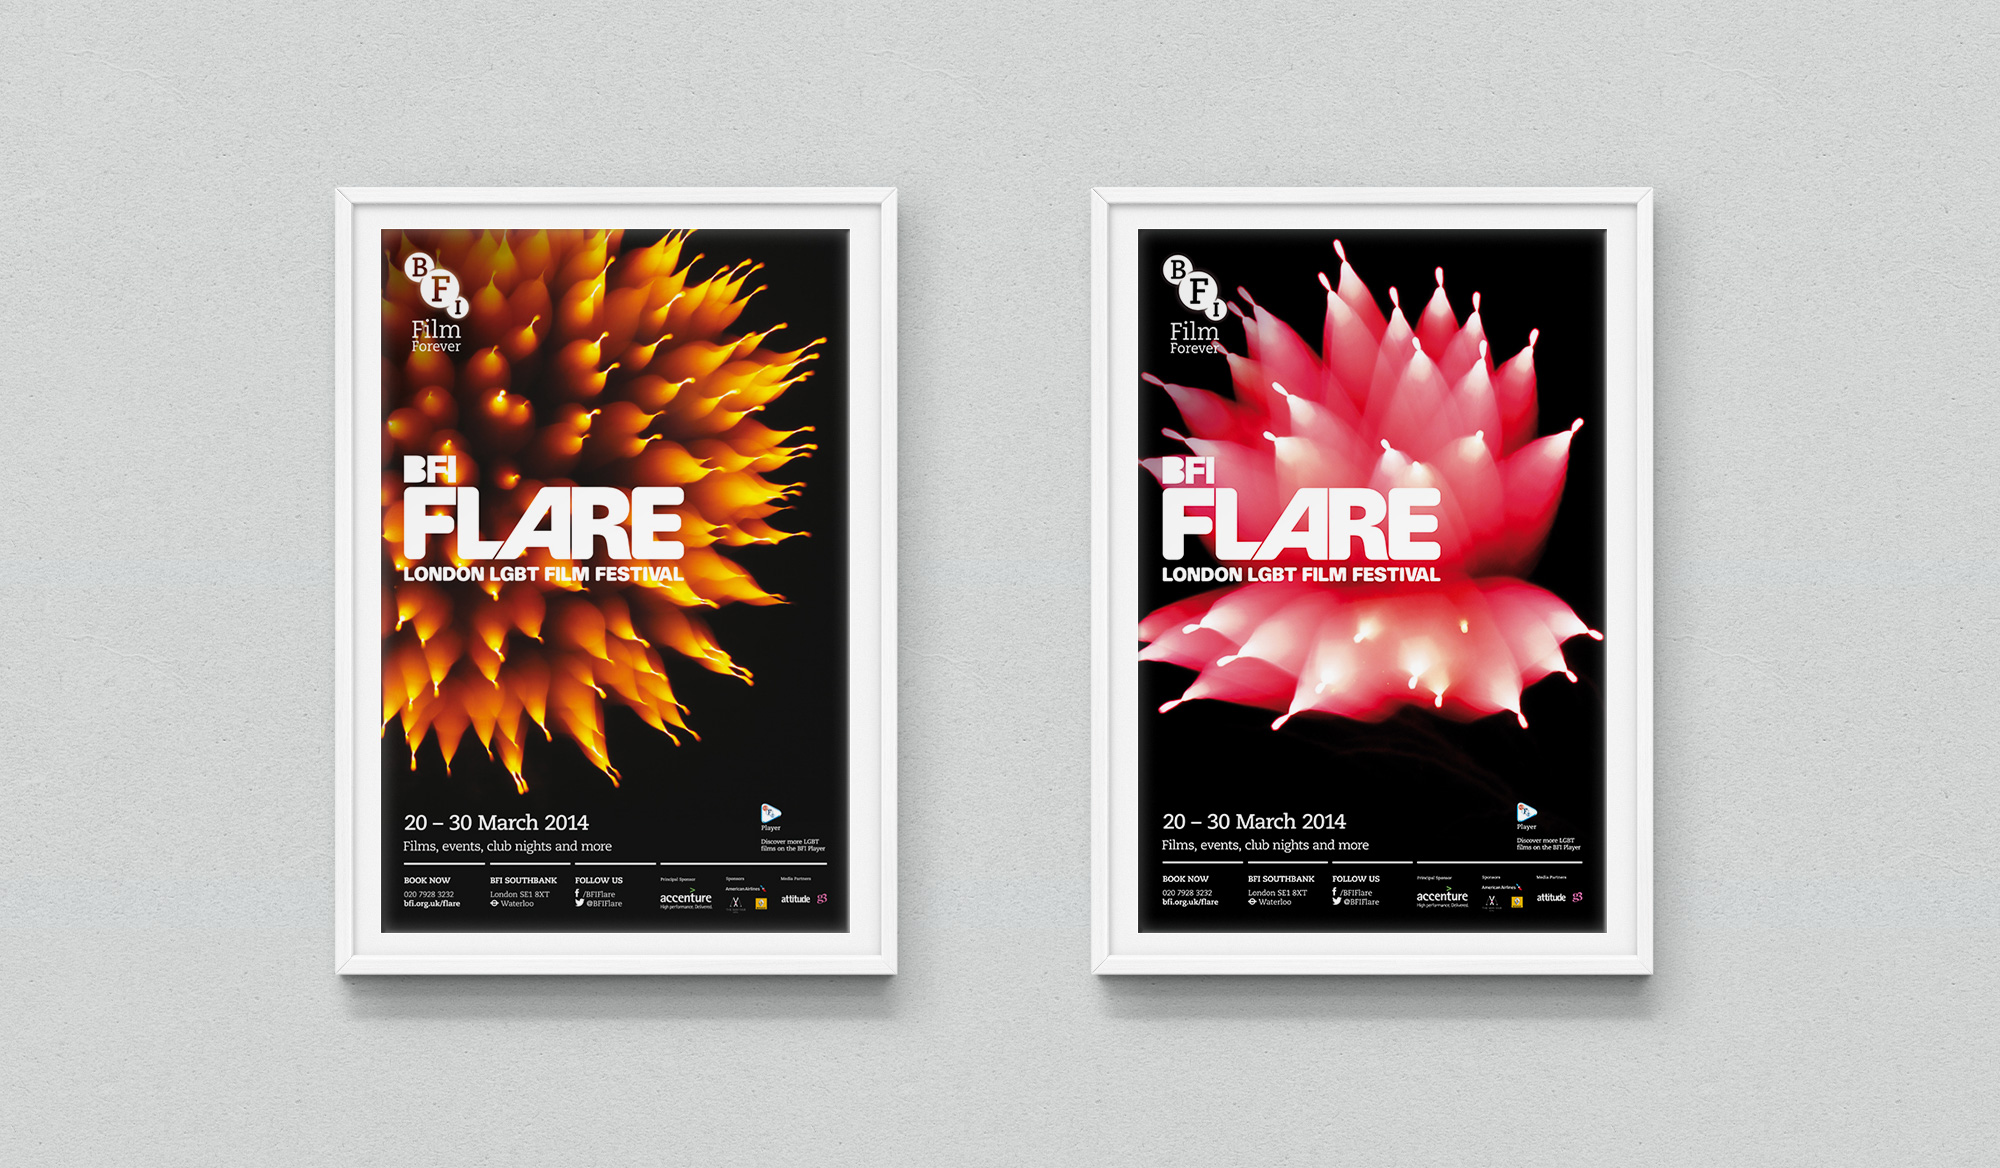 flare-posters-background-01